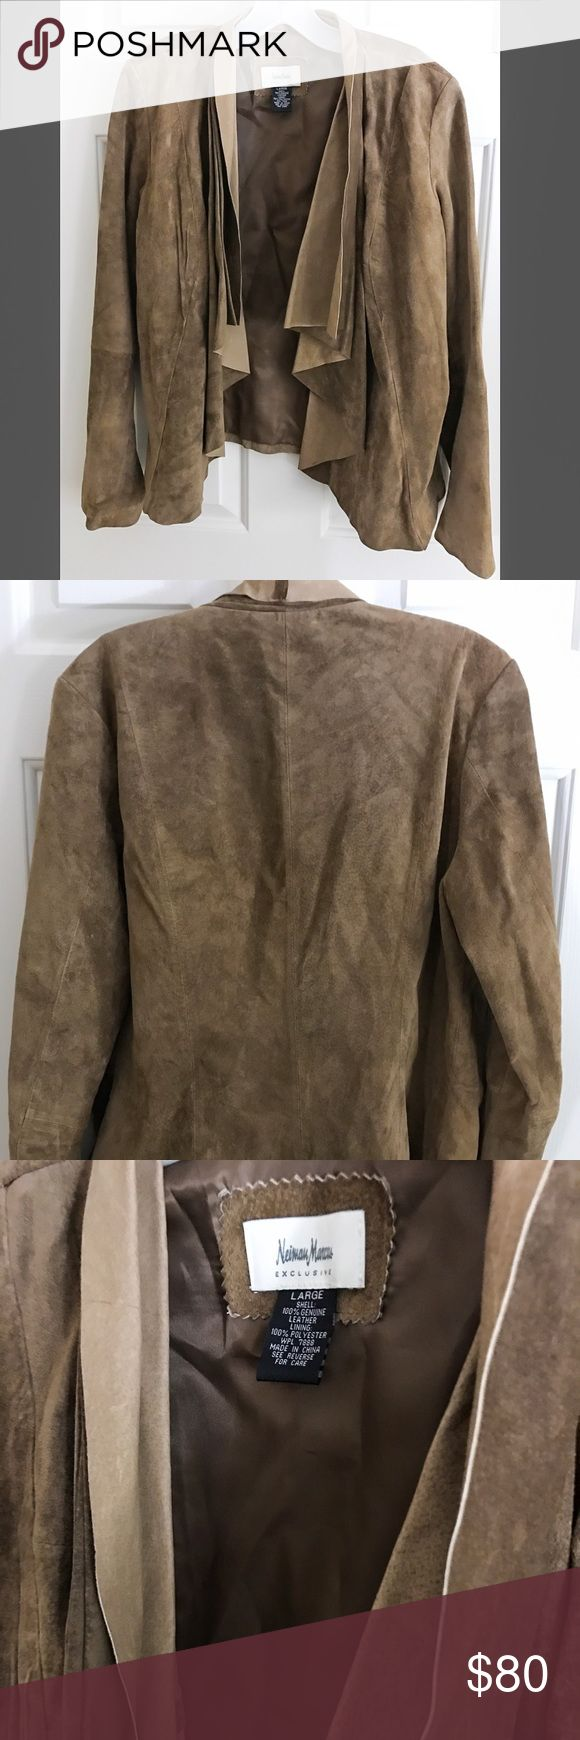 NWOT Suede Moto Jacket — Neiman Marcus Authentic Suede Moto Jacket! I ordered this beautiful jacket online from NM, but sadly it didn't fit. I waited too long to return it, and it doesn't have tags. But I promise it's never been worn. Neiman Marcus Jackets & Coats